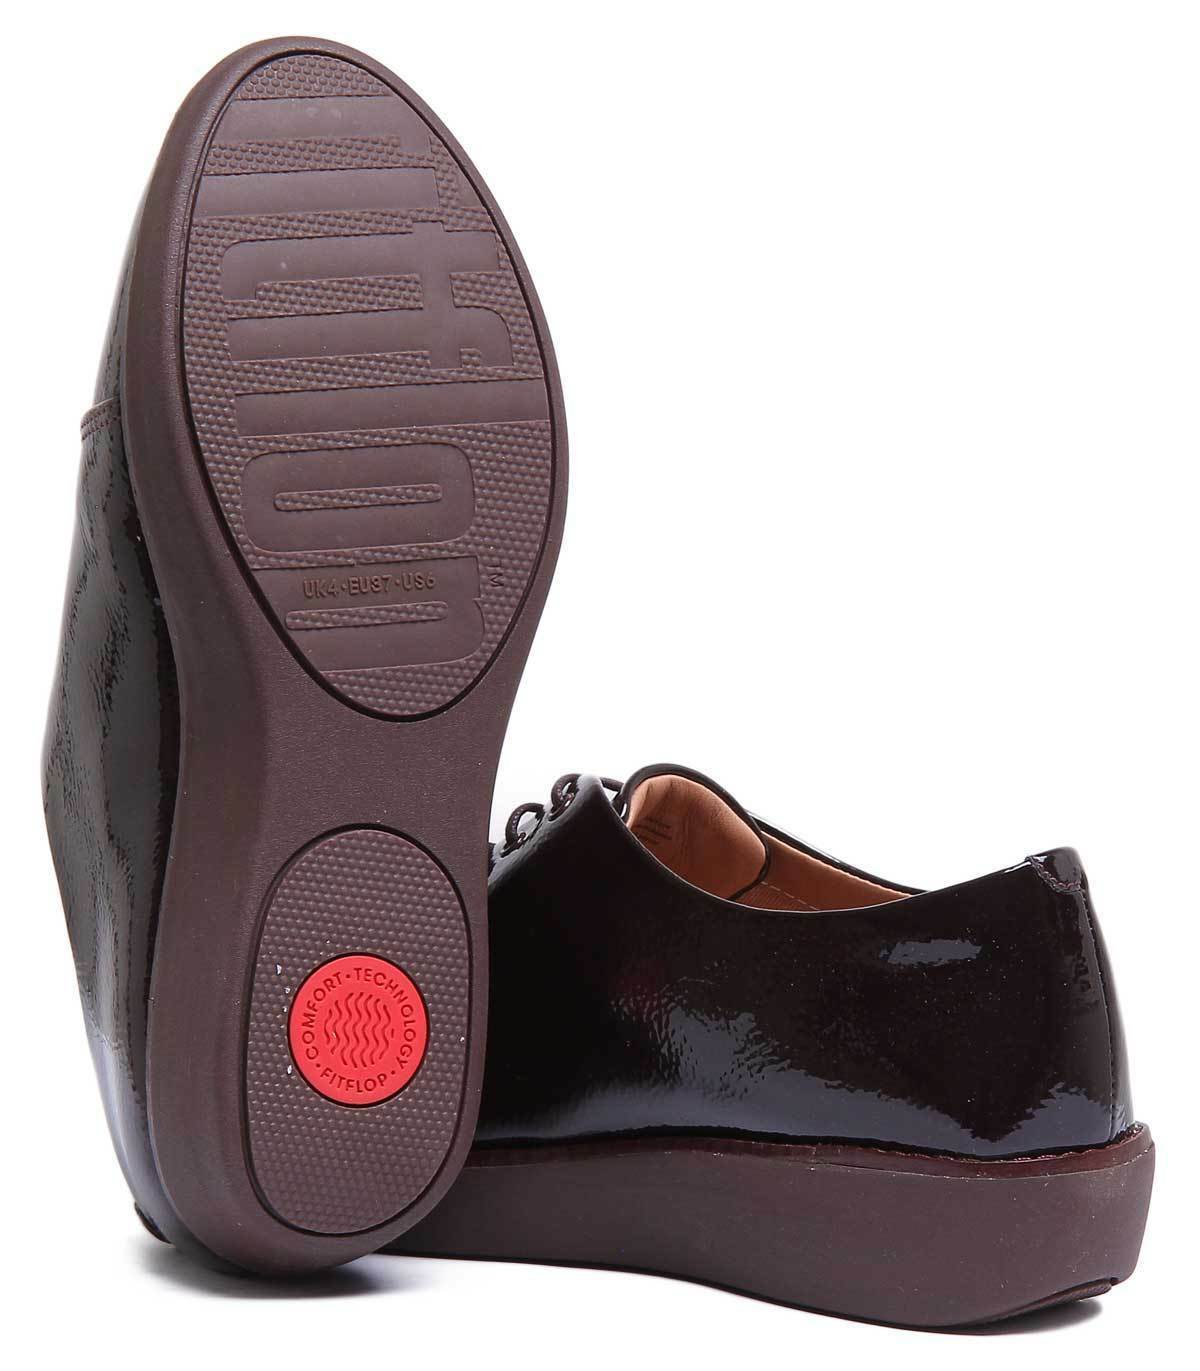 Fitflop Leder Derby Damens Patent Leder Fitflop Berry Derby Schuhes Größe UK 3 - 8 5f0463